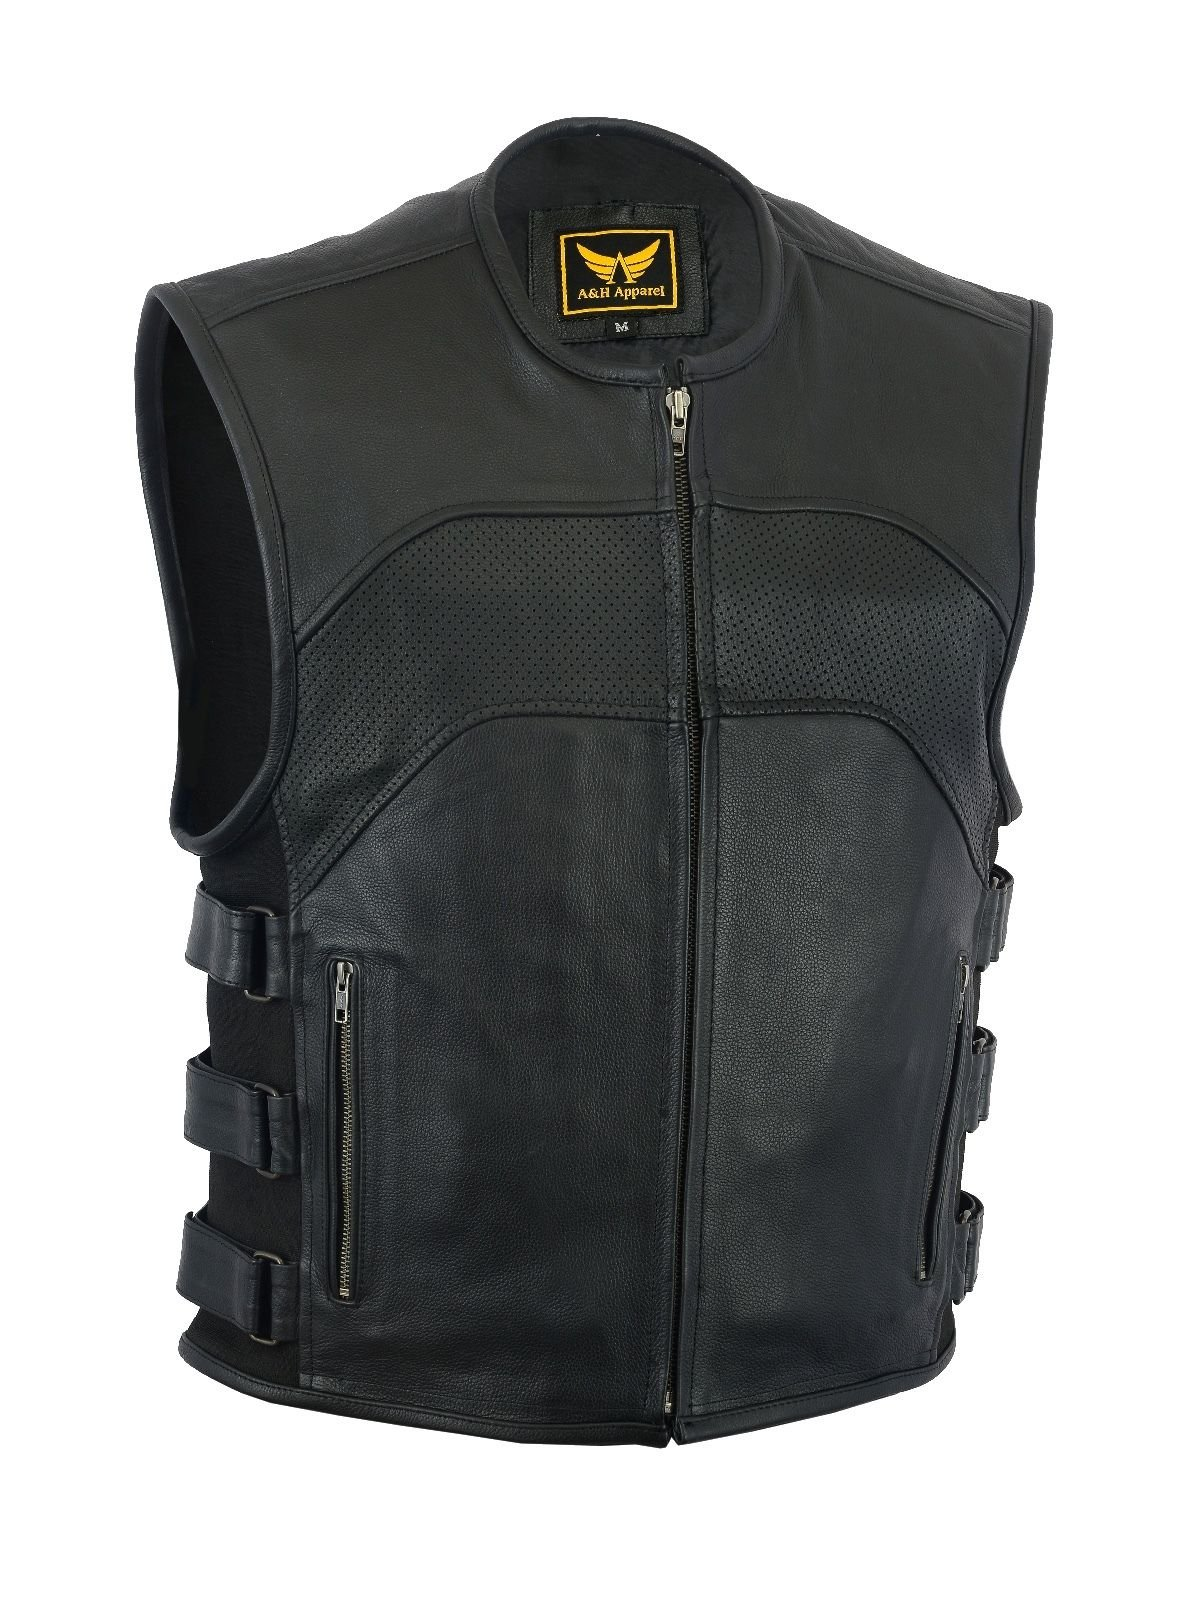 A&H Apparel Mens Motorcycle Biker Classic Vest Genuine Cowhide Leather Vest With Gun Pocket (X-Large)